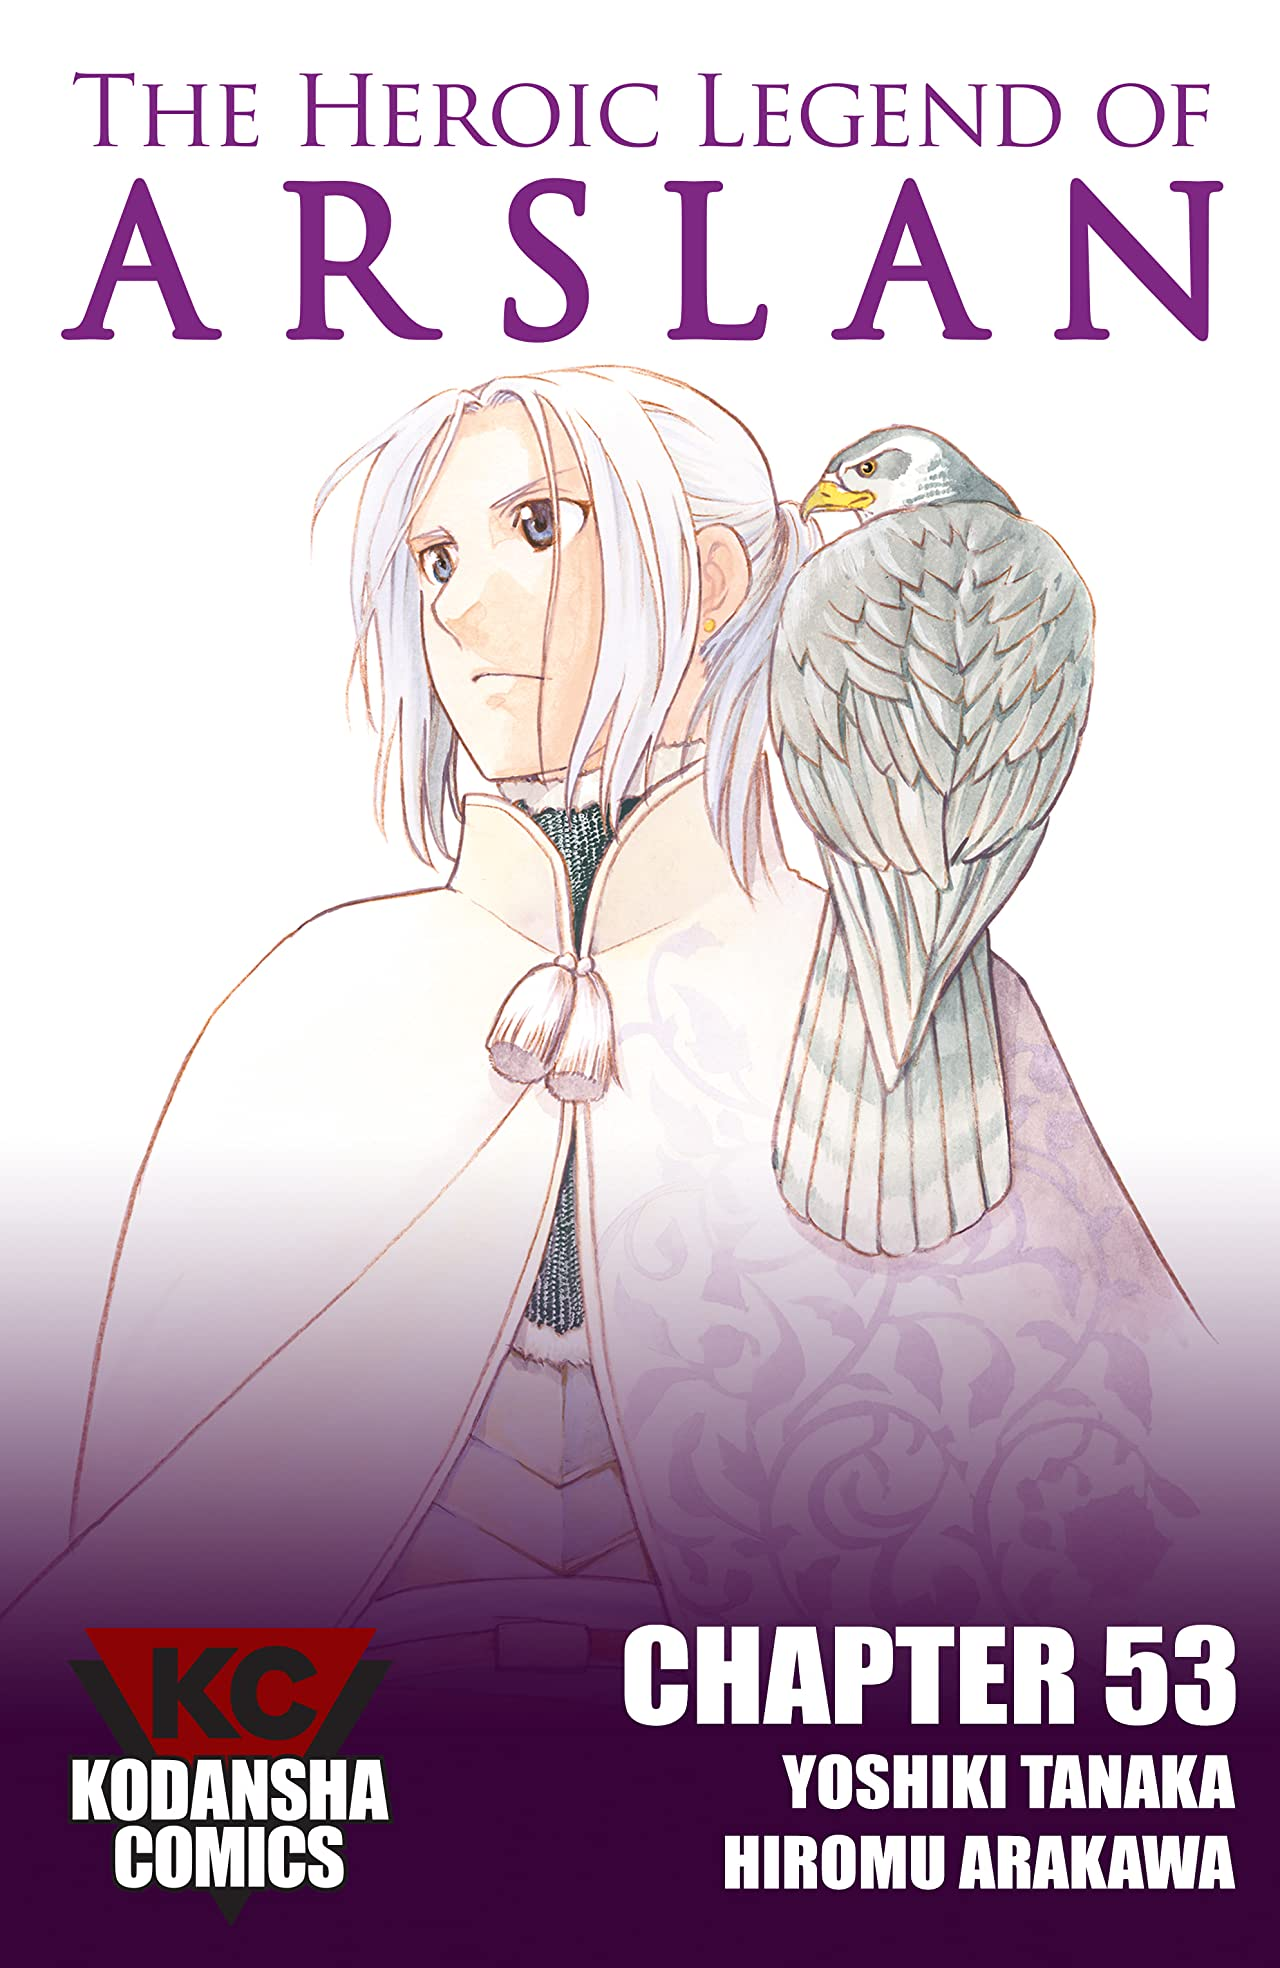 The Heroic Legend of Arslan #53